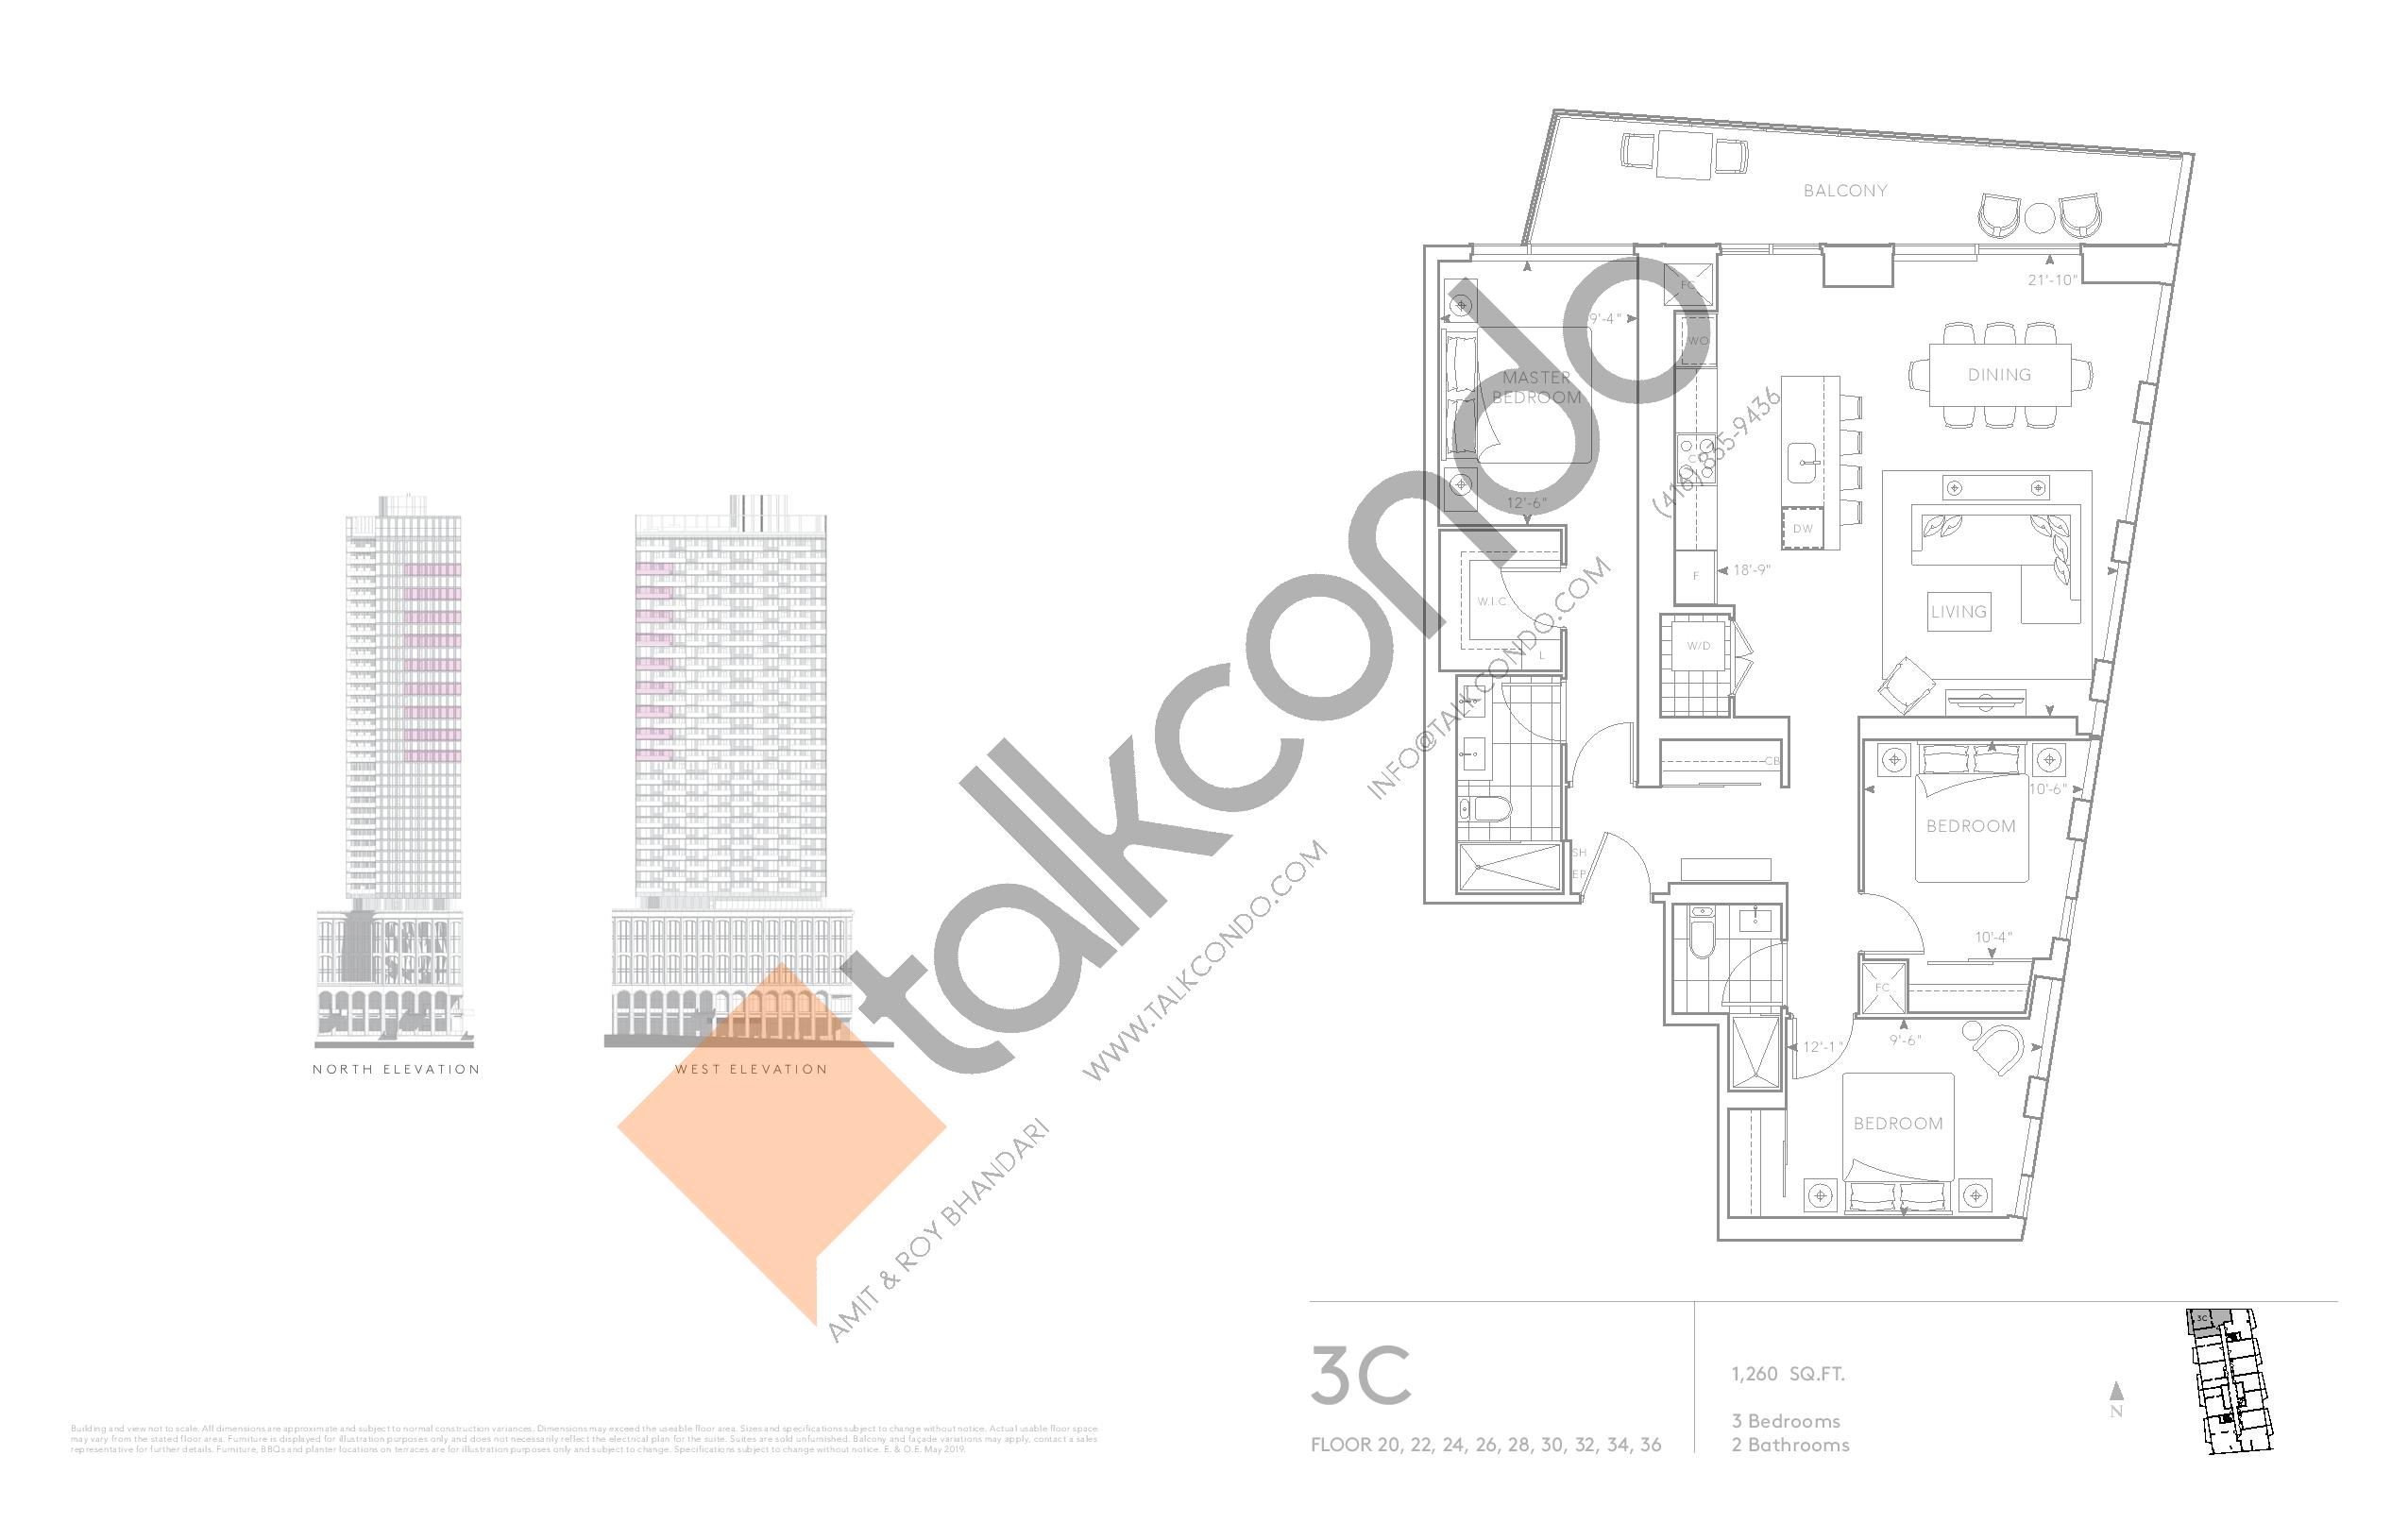 3C - Classic Series Floor Plan at Tridel at The Well Condos - 1260 sq.ft